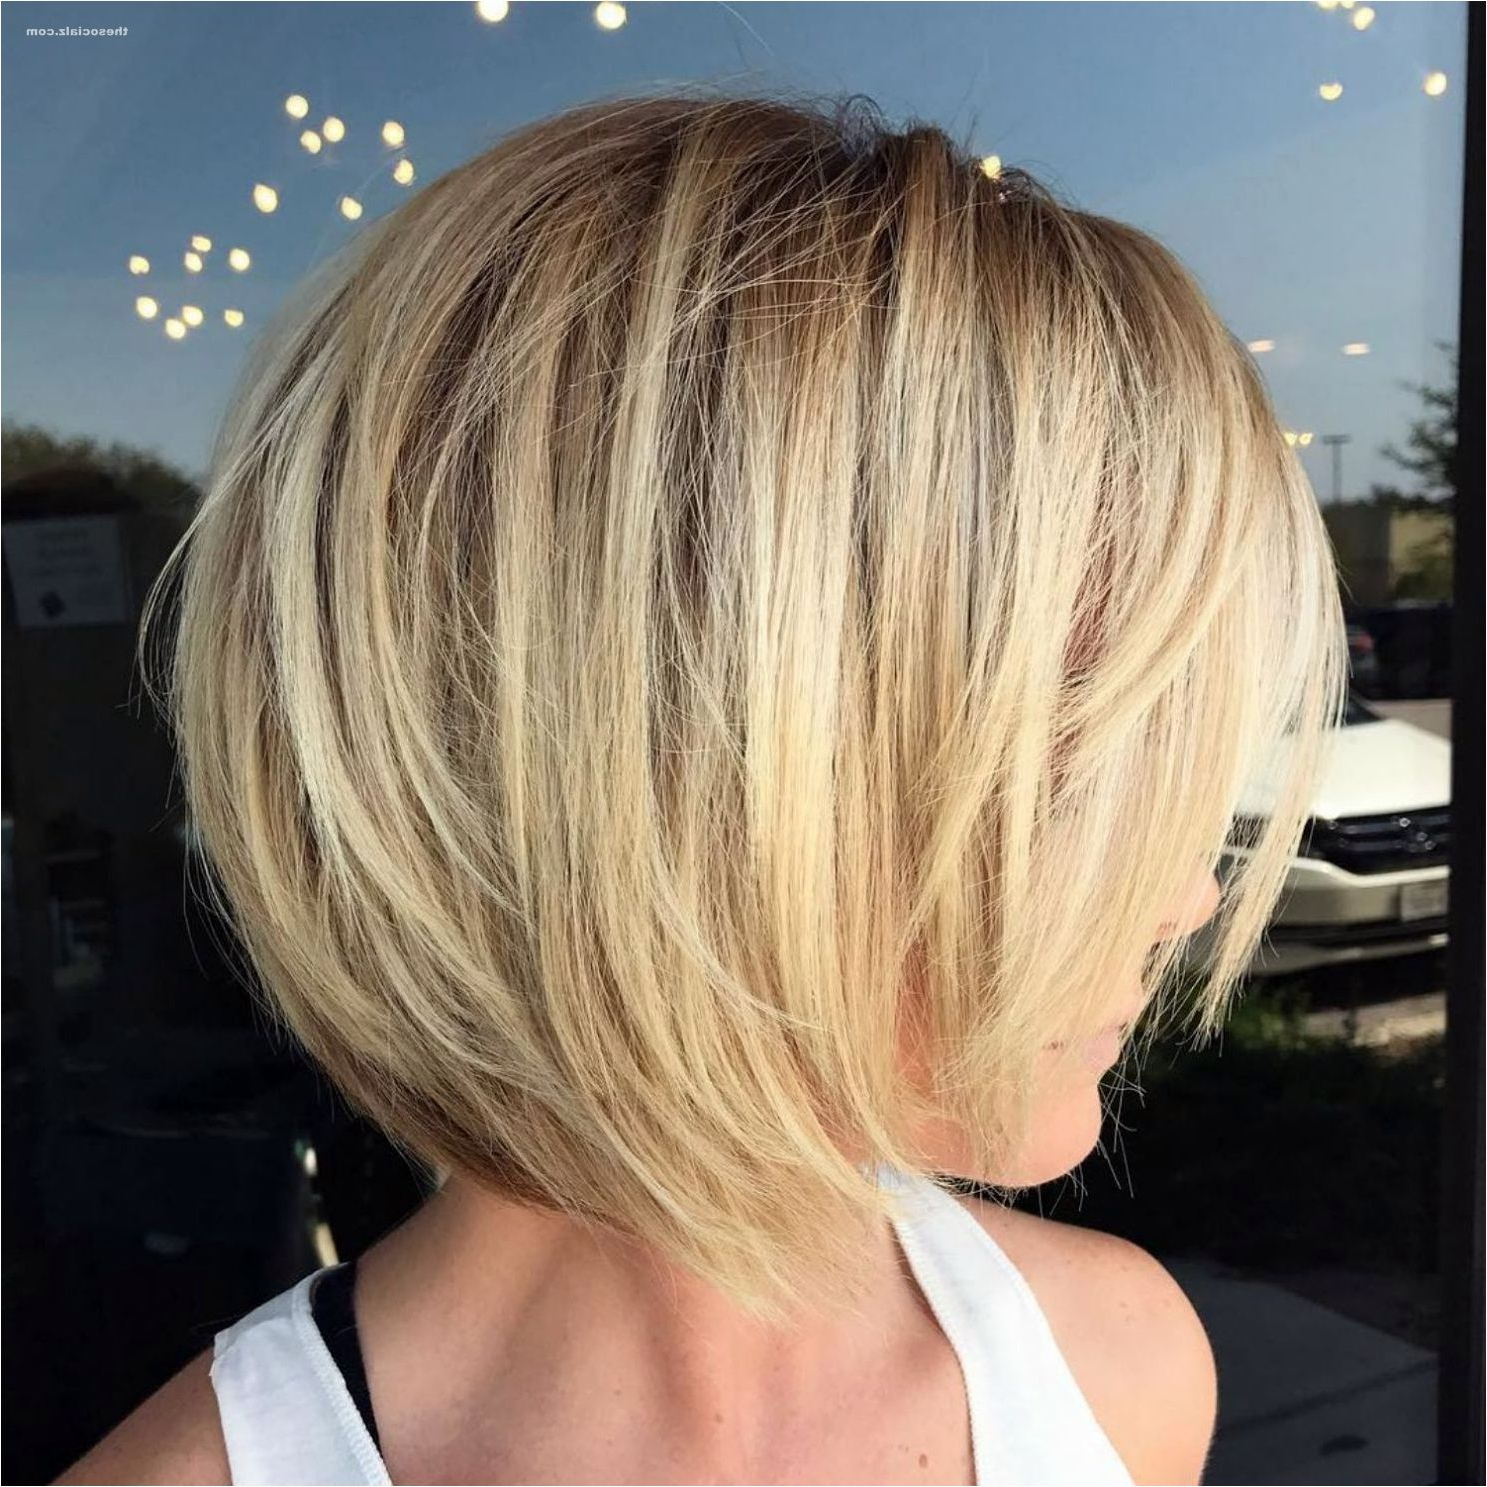 50 Short Layered Bob Haircuts With Side Swept Bangs That Throughout Most Recently Released Dynamic Layered Feathered Bangs Hairstyles (View 8 of 20)